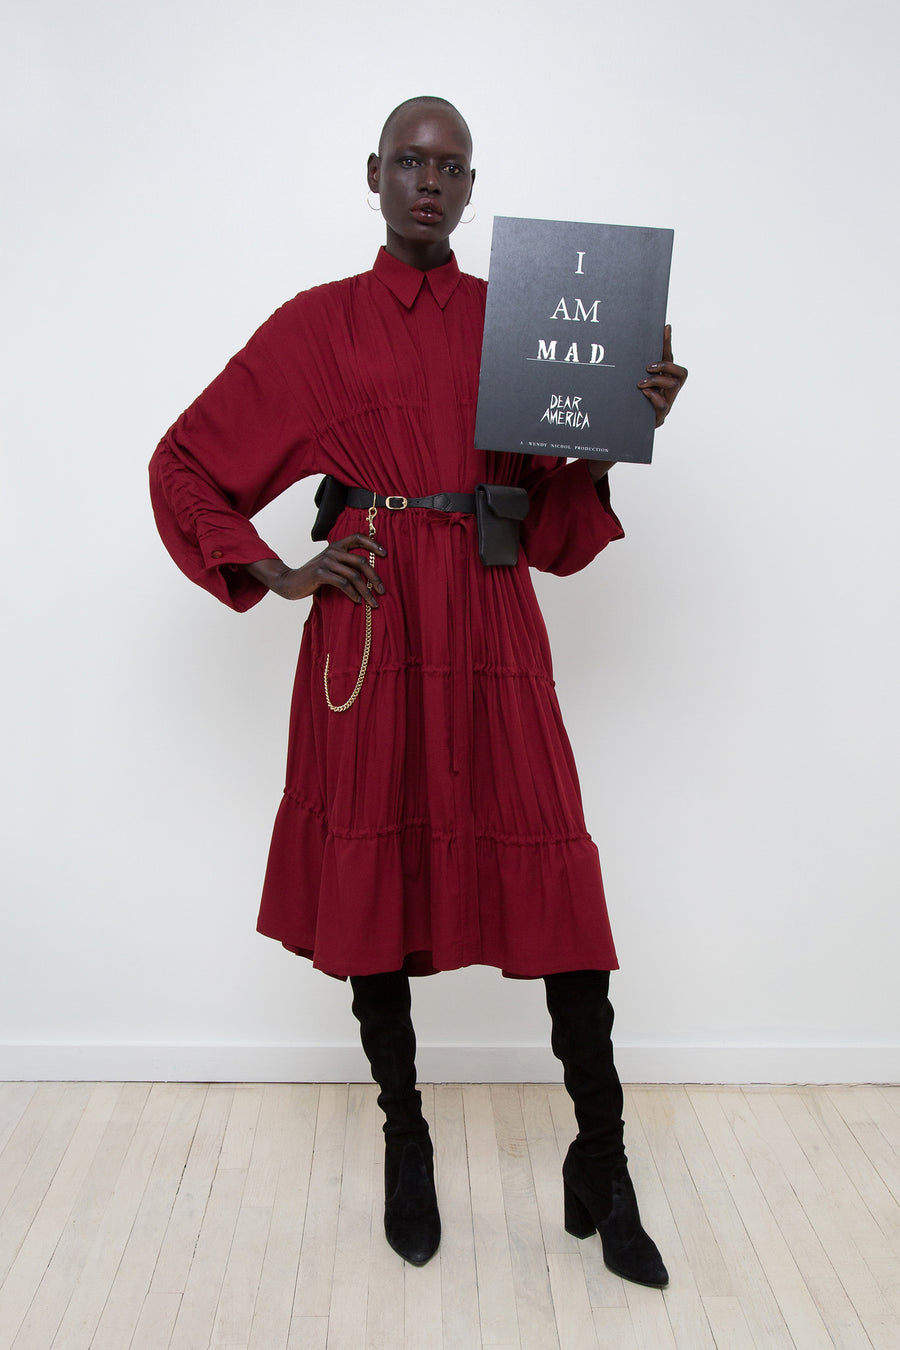 Ajak Deng IMG Model Wendy Nichol AW17 Clothing Fashion Anti Fascist Runway Show Dear America Handmade in NYC New York City Protest March I AM Drawstring Draw String Dress Coat Ruche Ruffle Collar Shirt Dress Red Long sleeves Blouse invisible buttons secret pockets Protest March